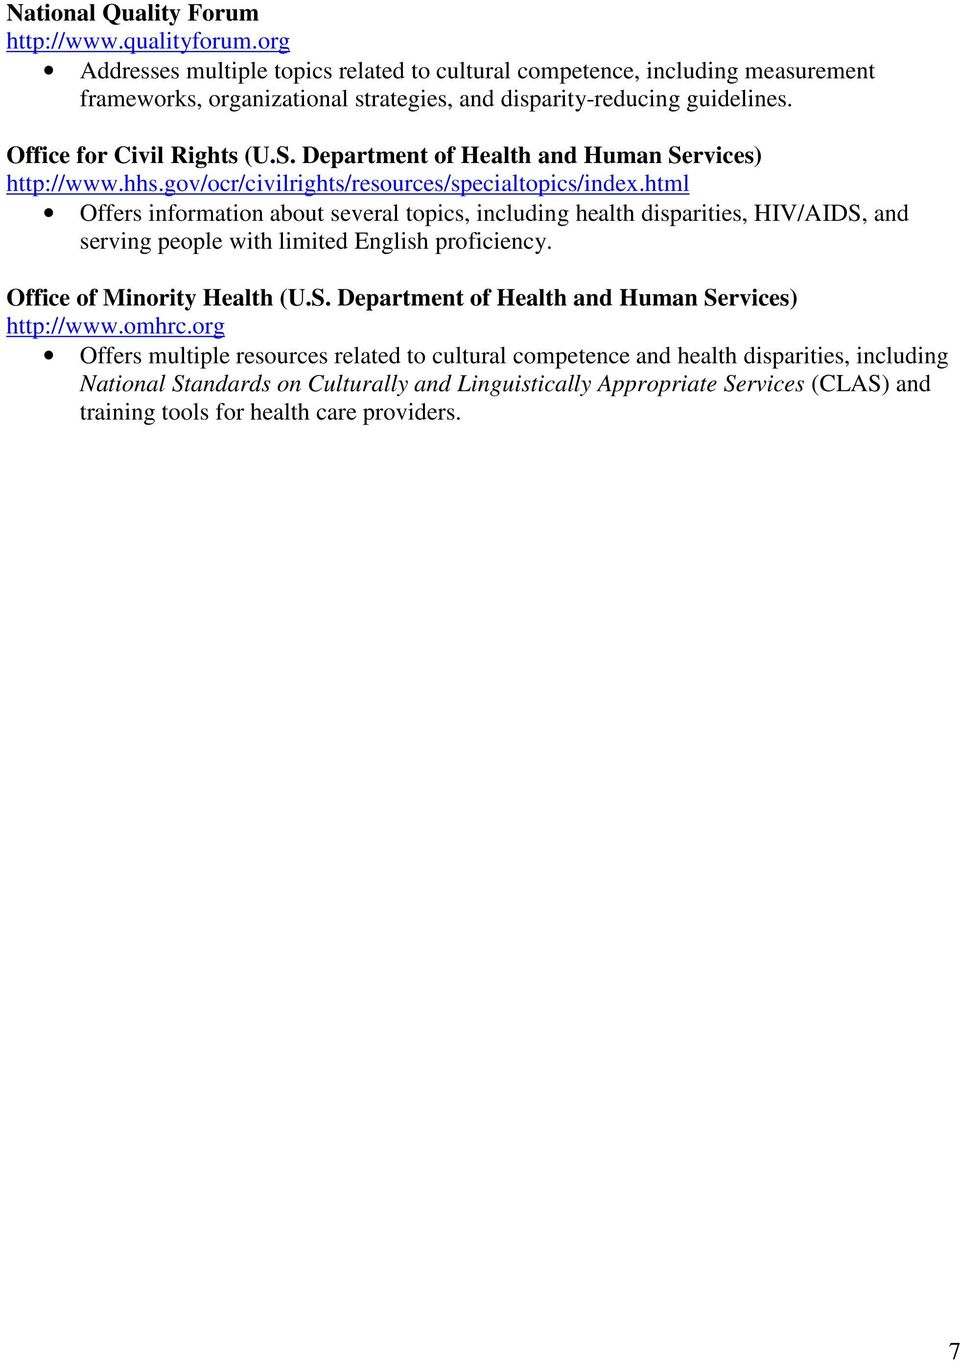 Department of Health and Human Services) http://www.hhs.gov/ocr/civilrights/resources/specialtopics/index.